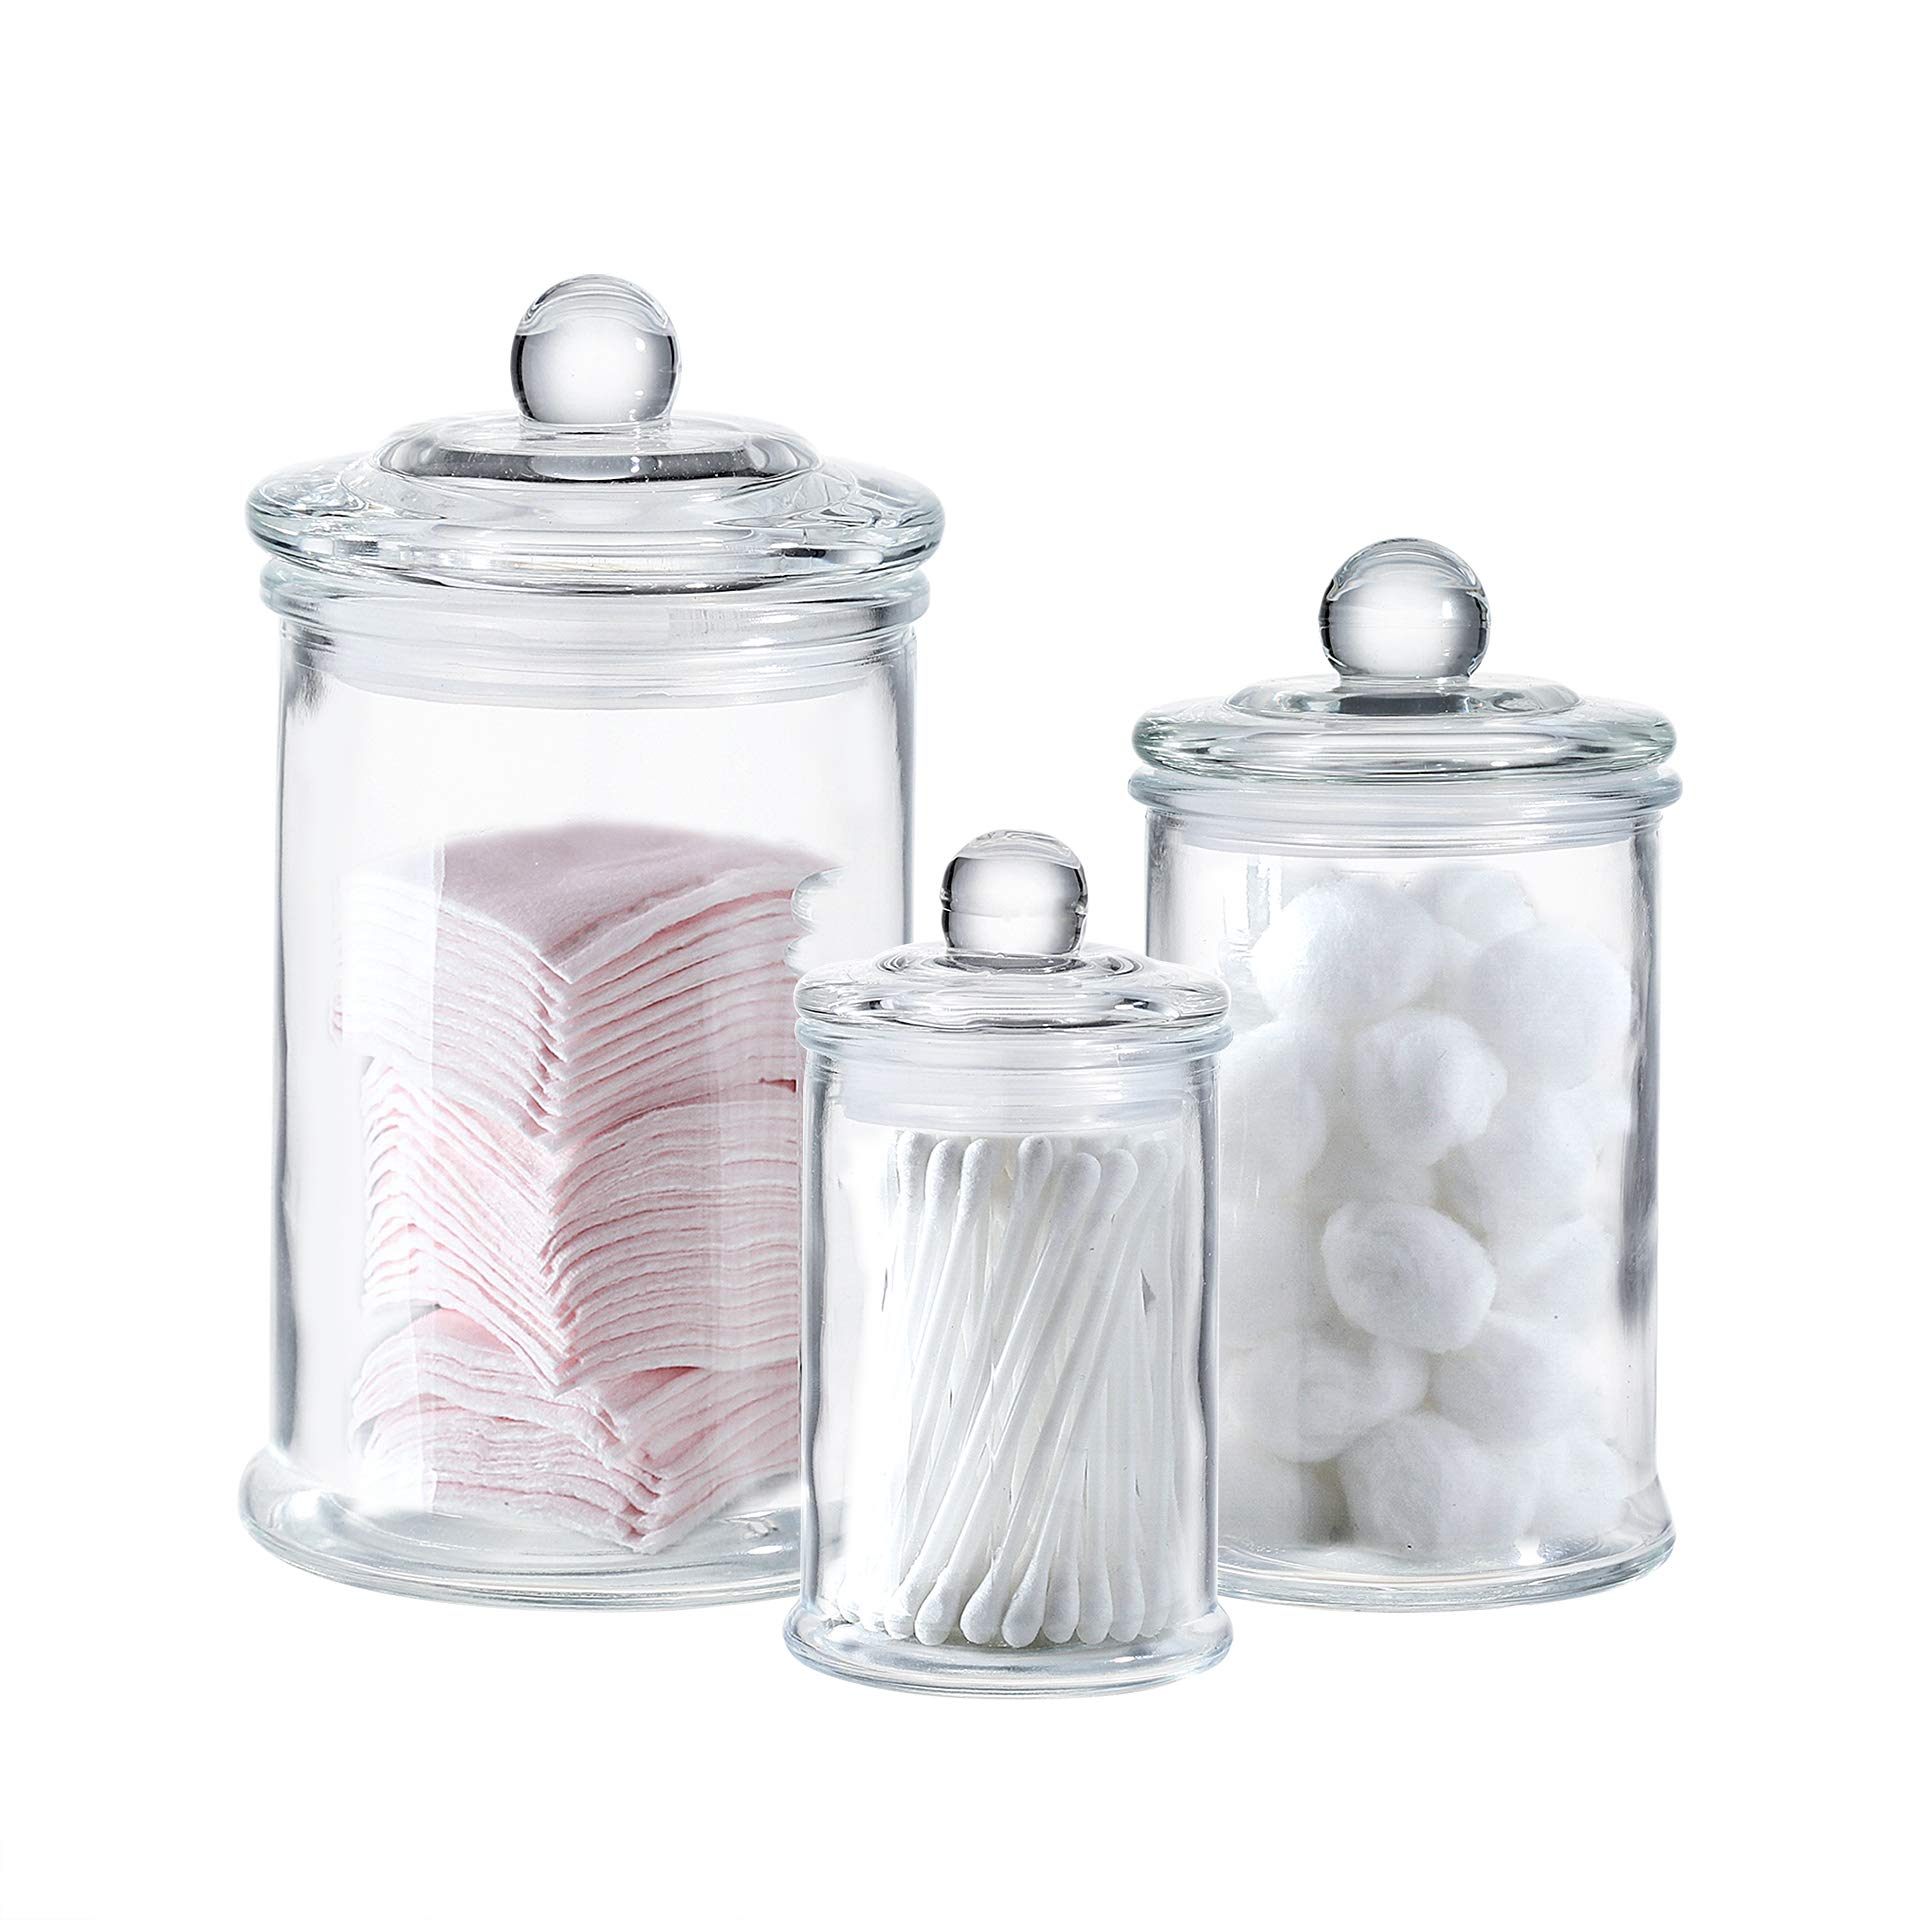 Mini Glass Apothecary Jars-Cotton Jar-Bathroom Storage Organizer Canisters Set of 3 by Whole Housewares